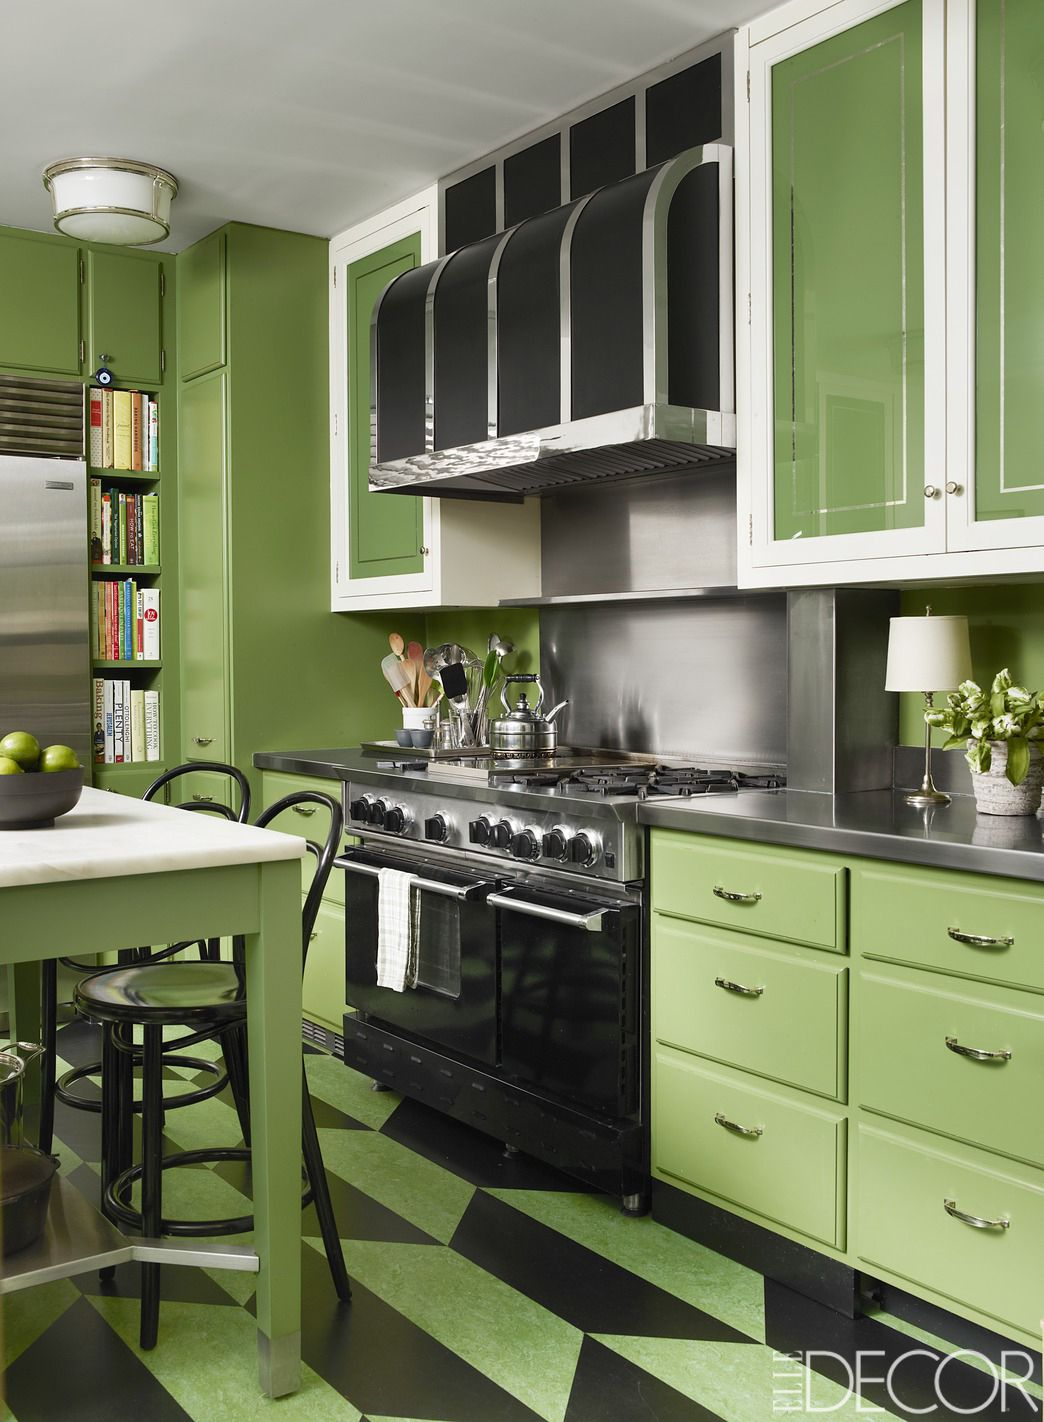 Small Space Design 50 Small Kitchen Design Ideas  Decorating Tiny Kitchens